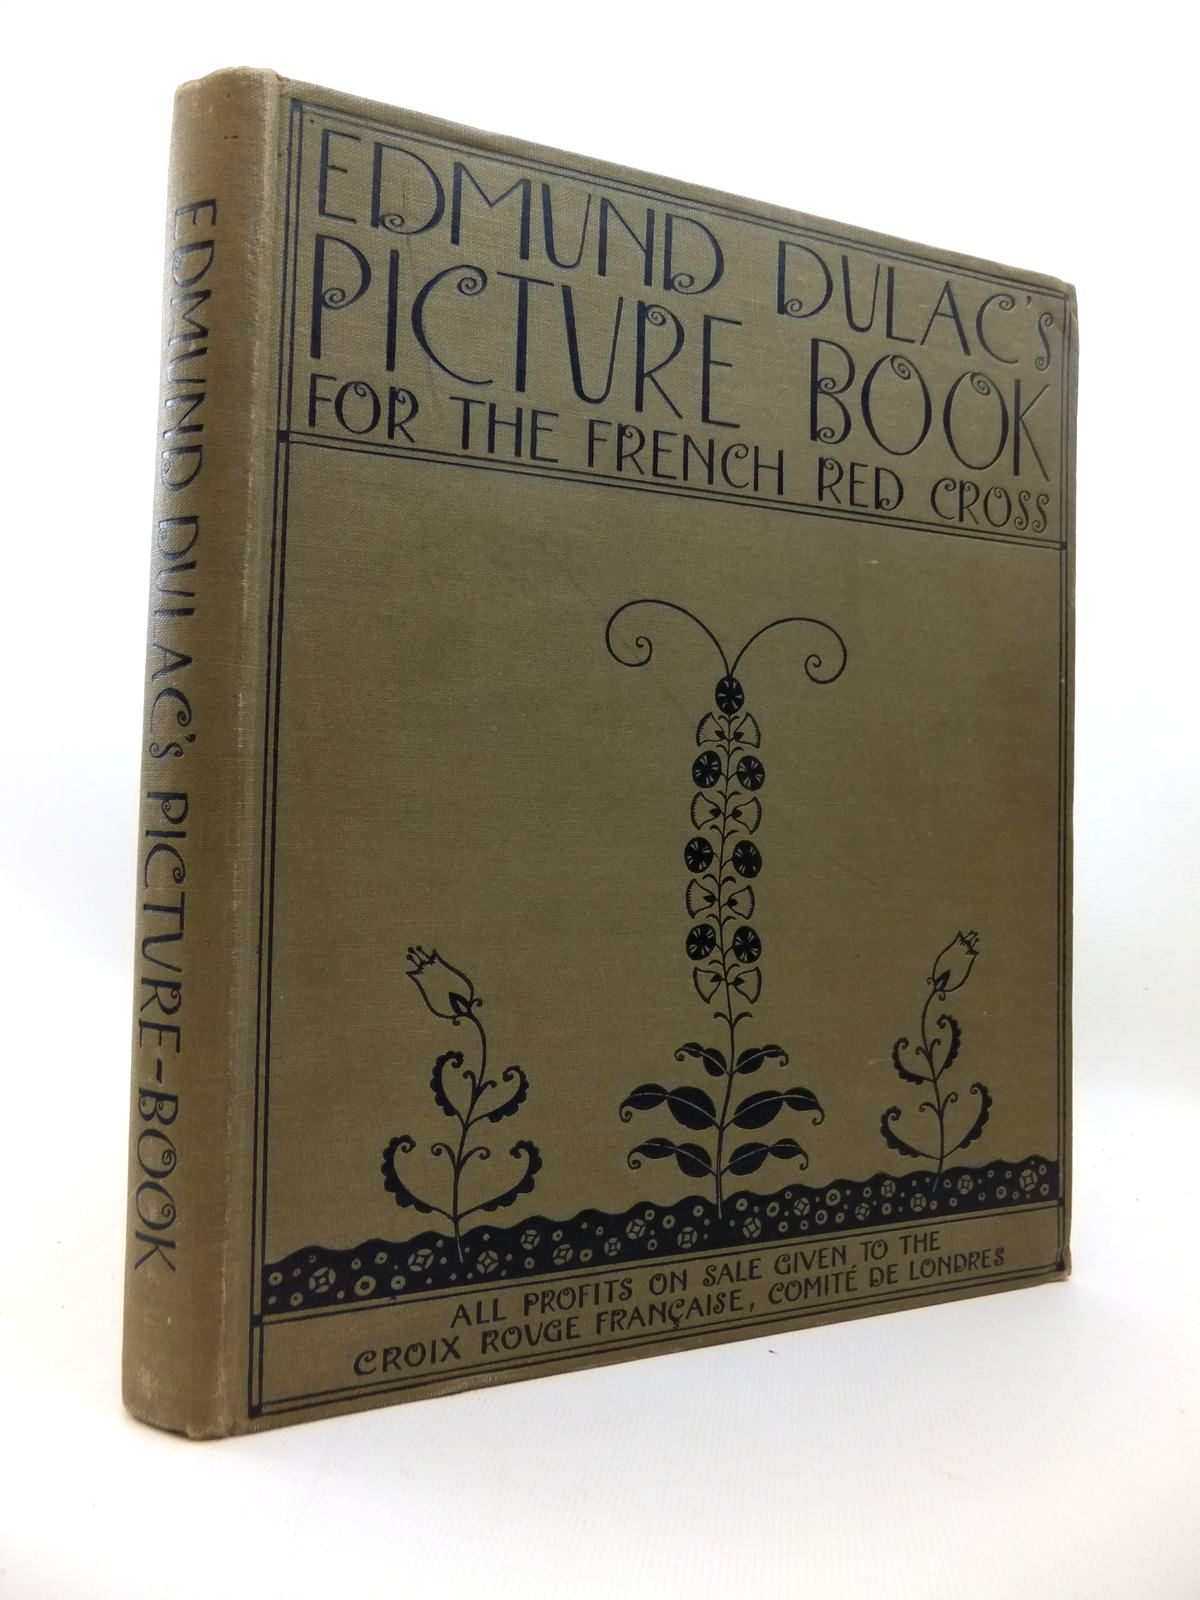 Cover of EDMUND DULAC'S PICTURE BOOK FOR THE FRENCH RED CROSS by